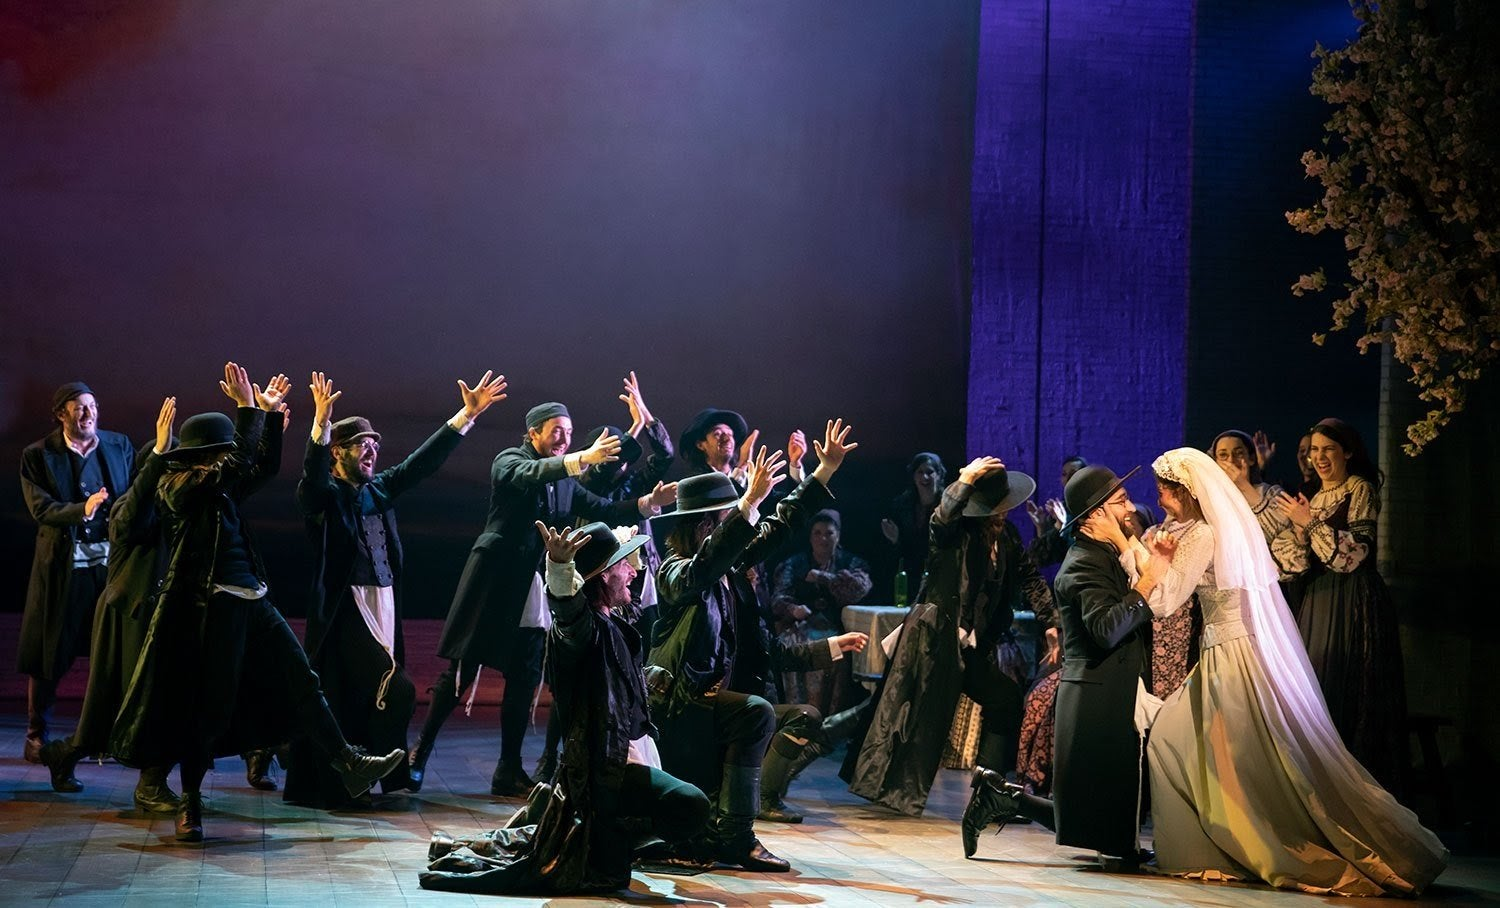 Fiddler on the Roof touring Broadway production